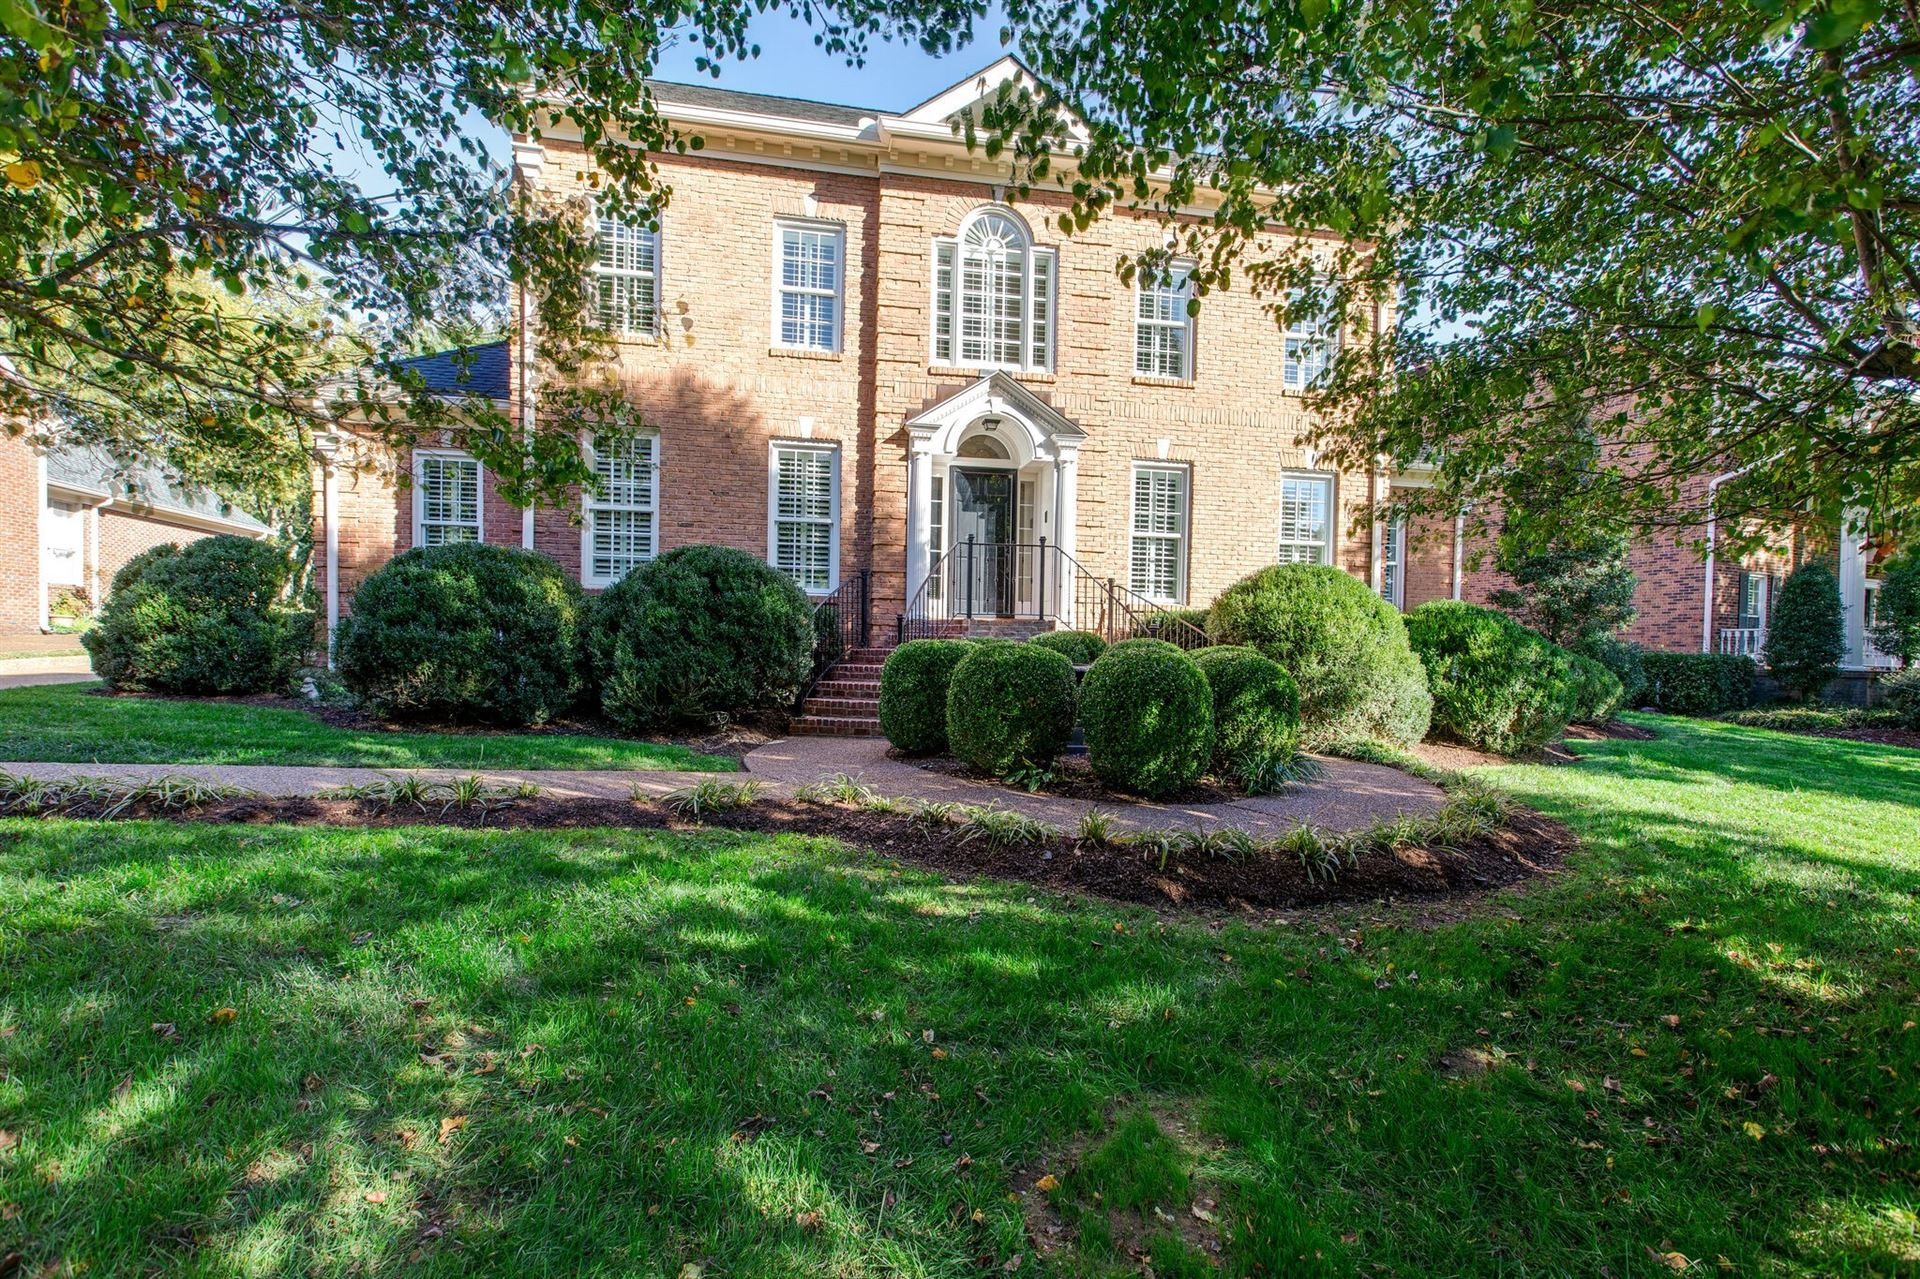 166 Sturbridge Dr, Franklin, TN 37064 - MLS#: 2209883